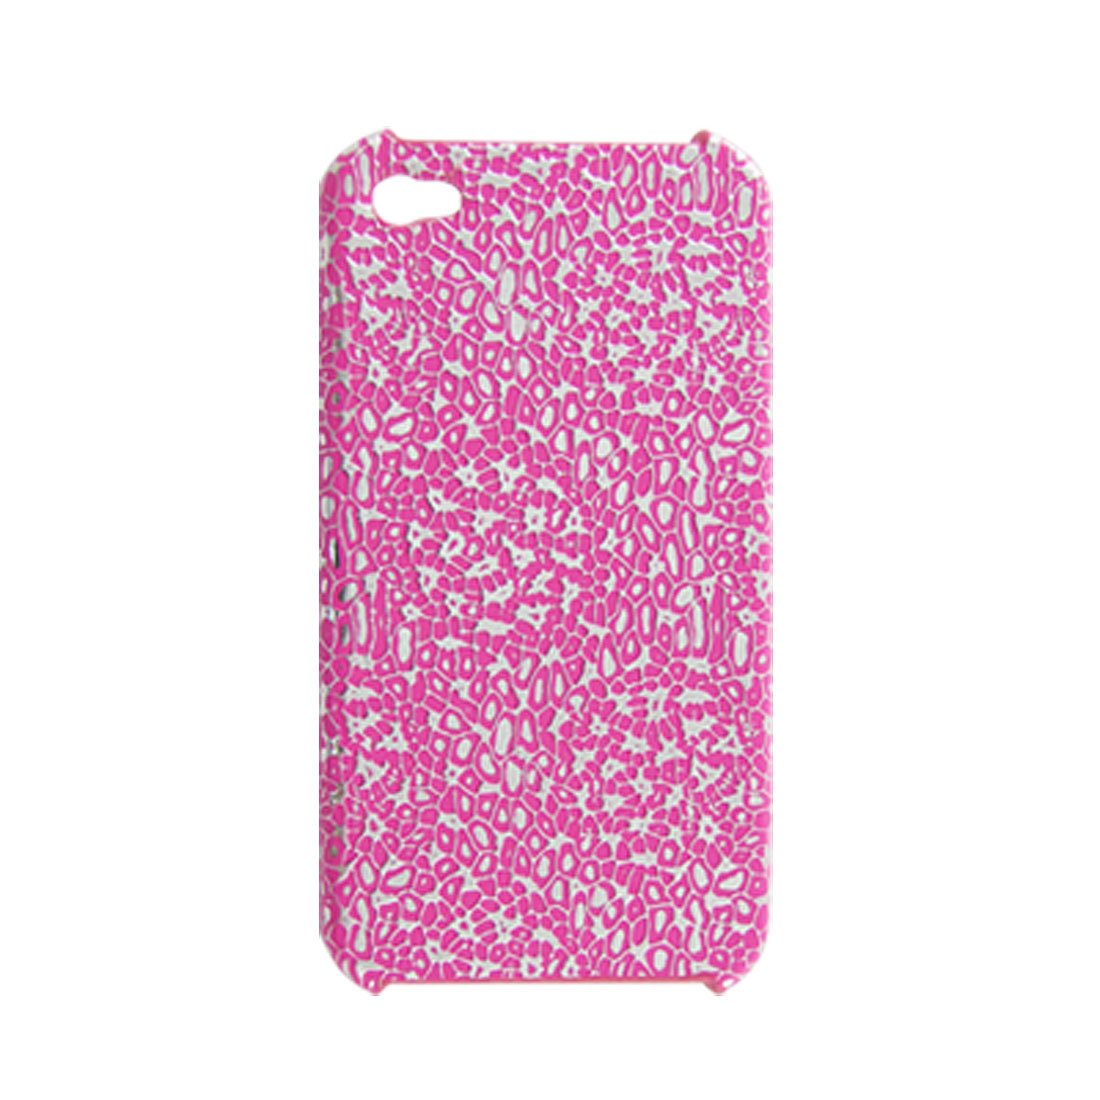 Textured Silver Tone Fuchsia Faux Leather Coated Plastic Case for iPhone 4 4G